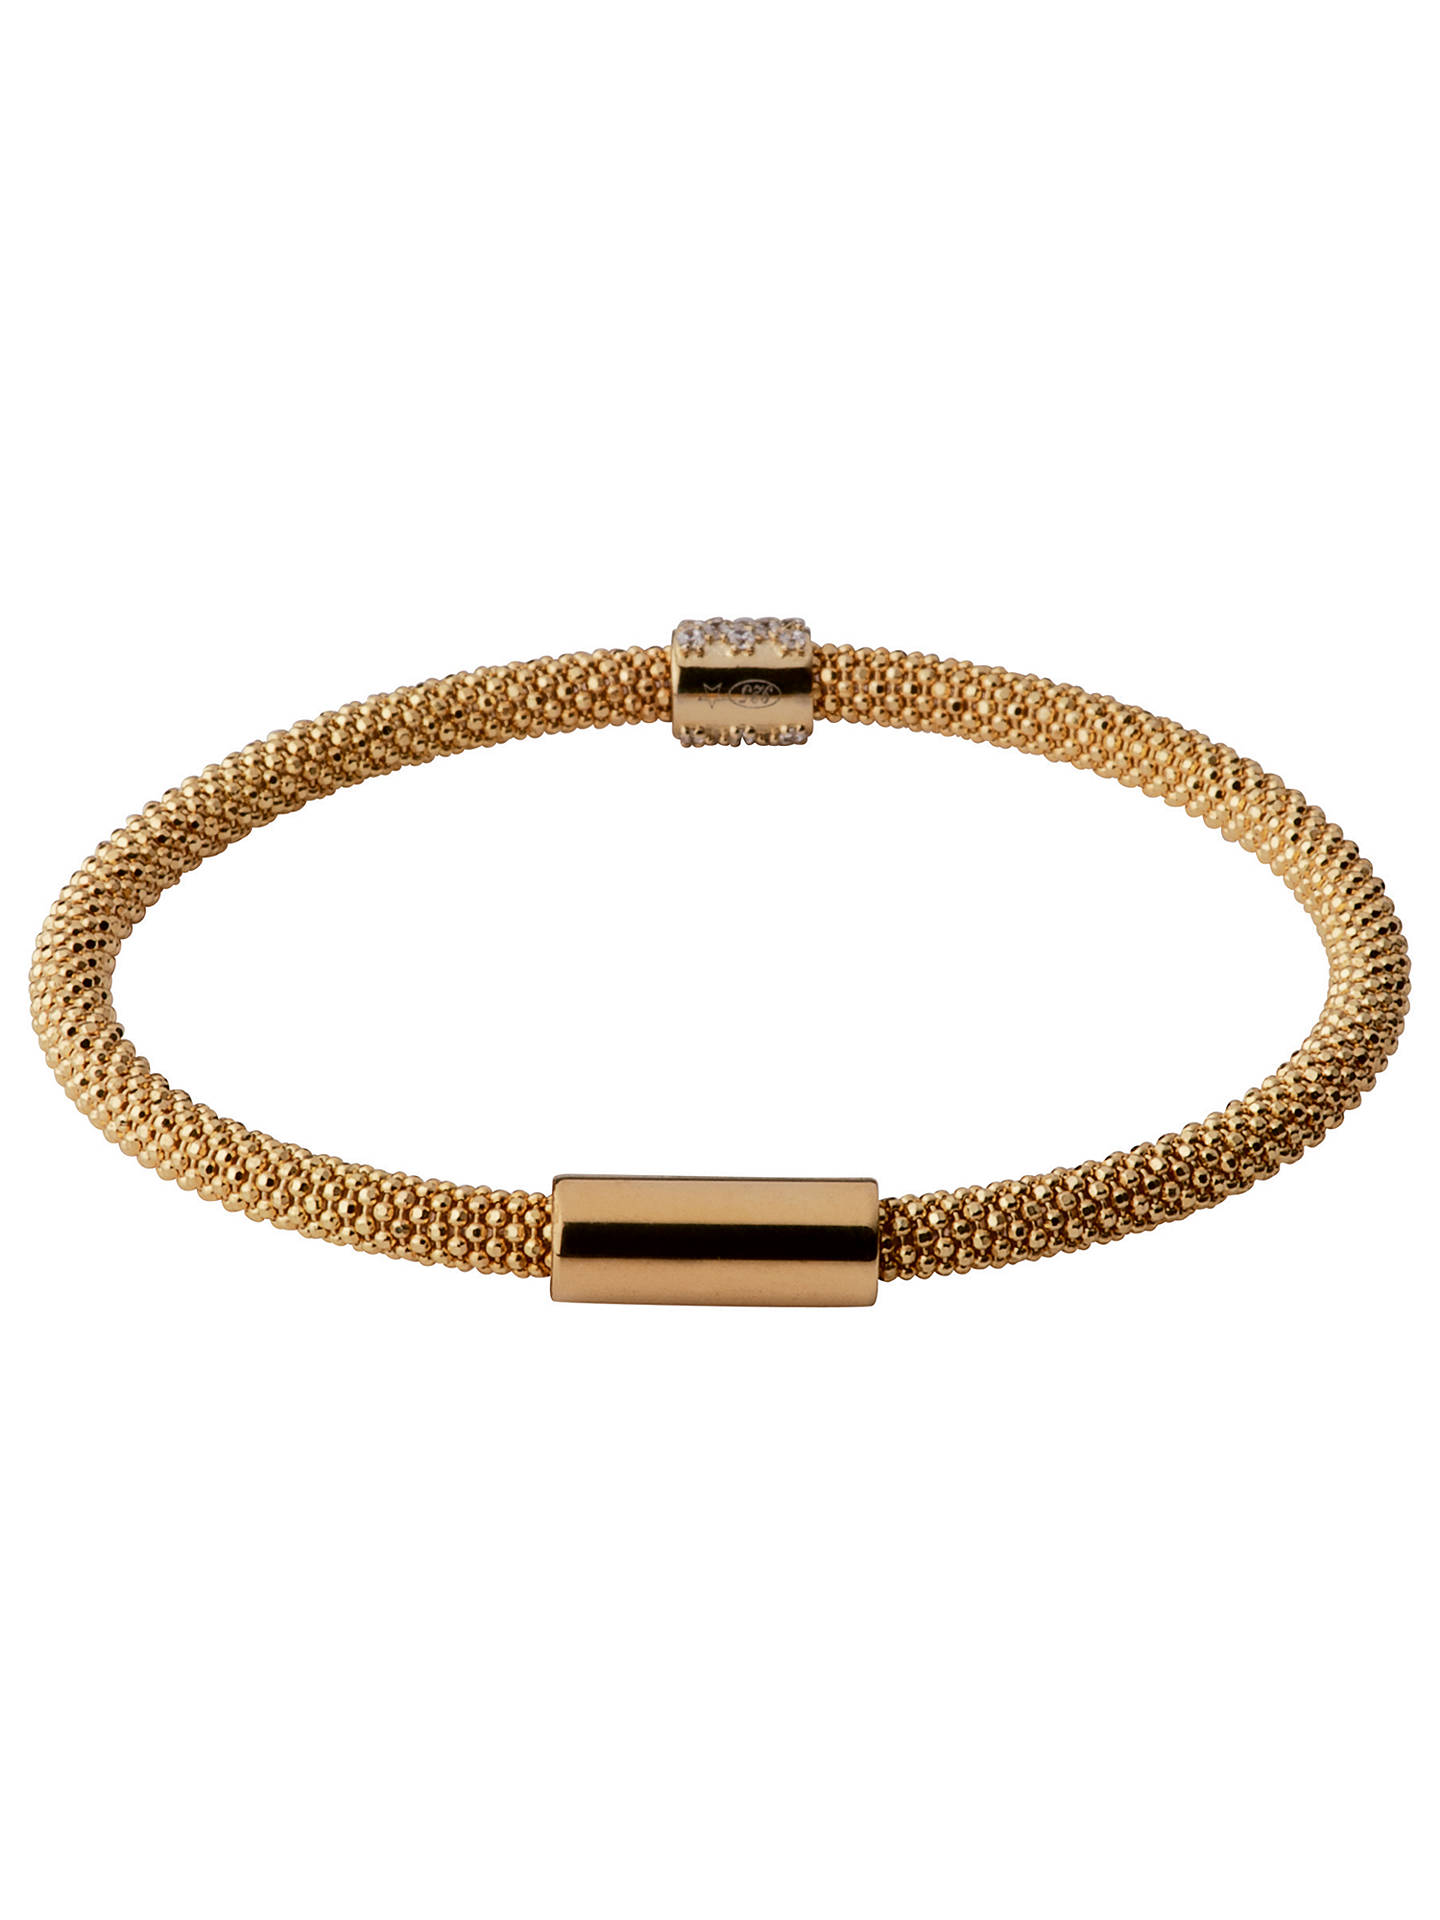 Buy Links of London Stardust Bead Bracelet, Gold Online at johnlewis.com